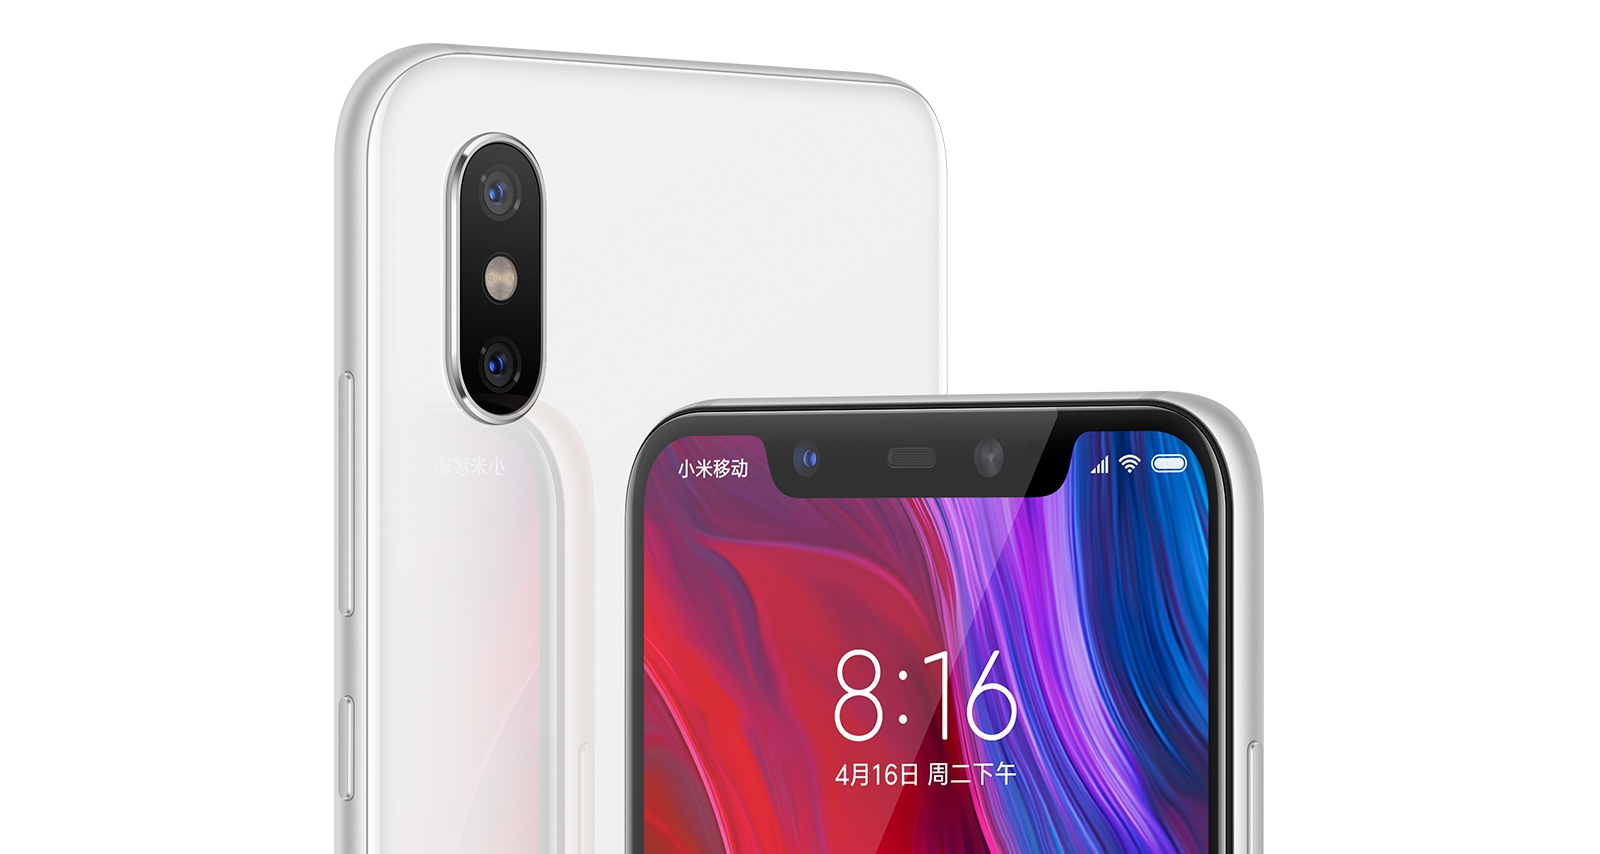 Xiaomi Mi 8 Explorer Edition comes with an in-screen fingerprint scanner